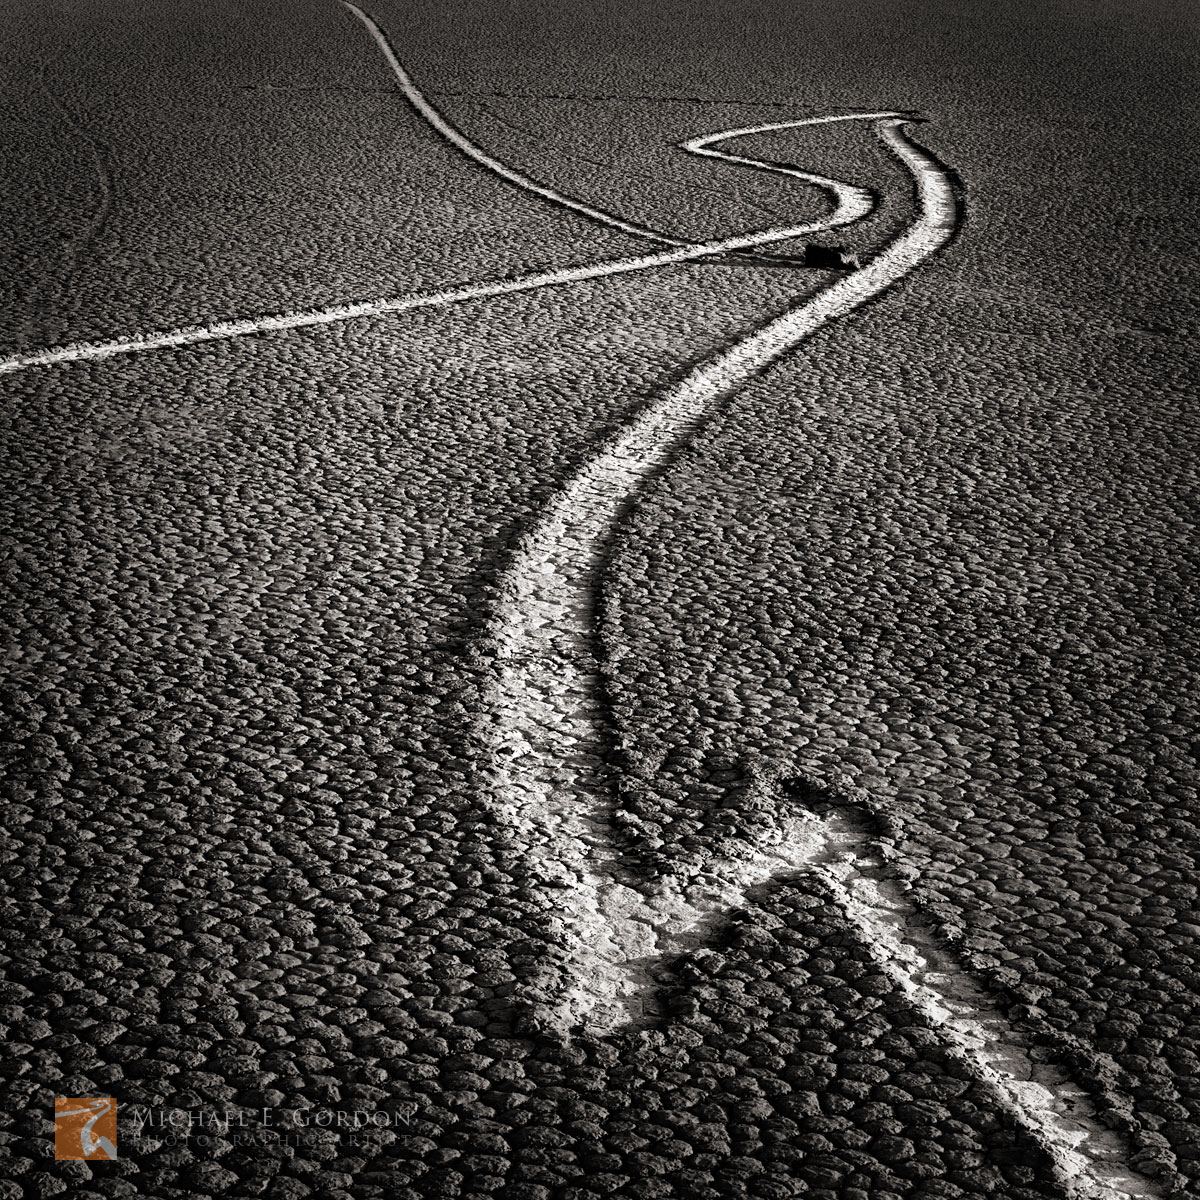 Moving rocks, tracks, trails, mysetrious, phenomenon, Racetrack Playa, Death Valley National Park, California, black and white, large format, photo, picture, photo